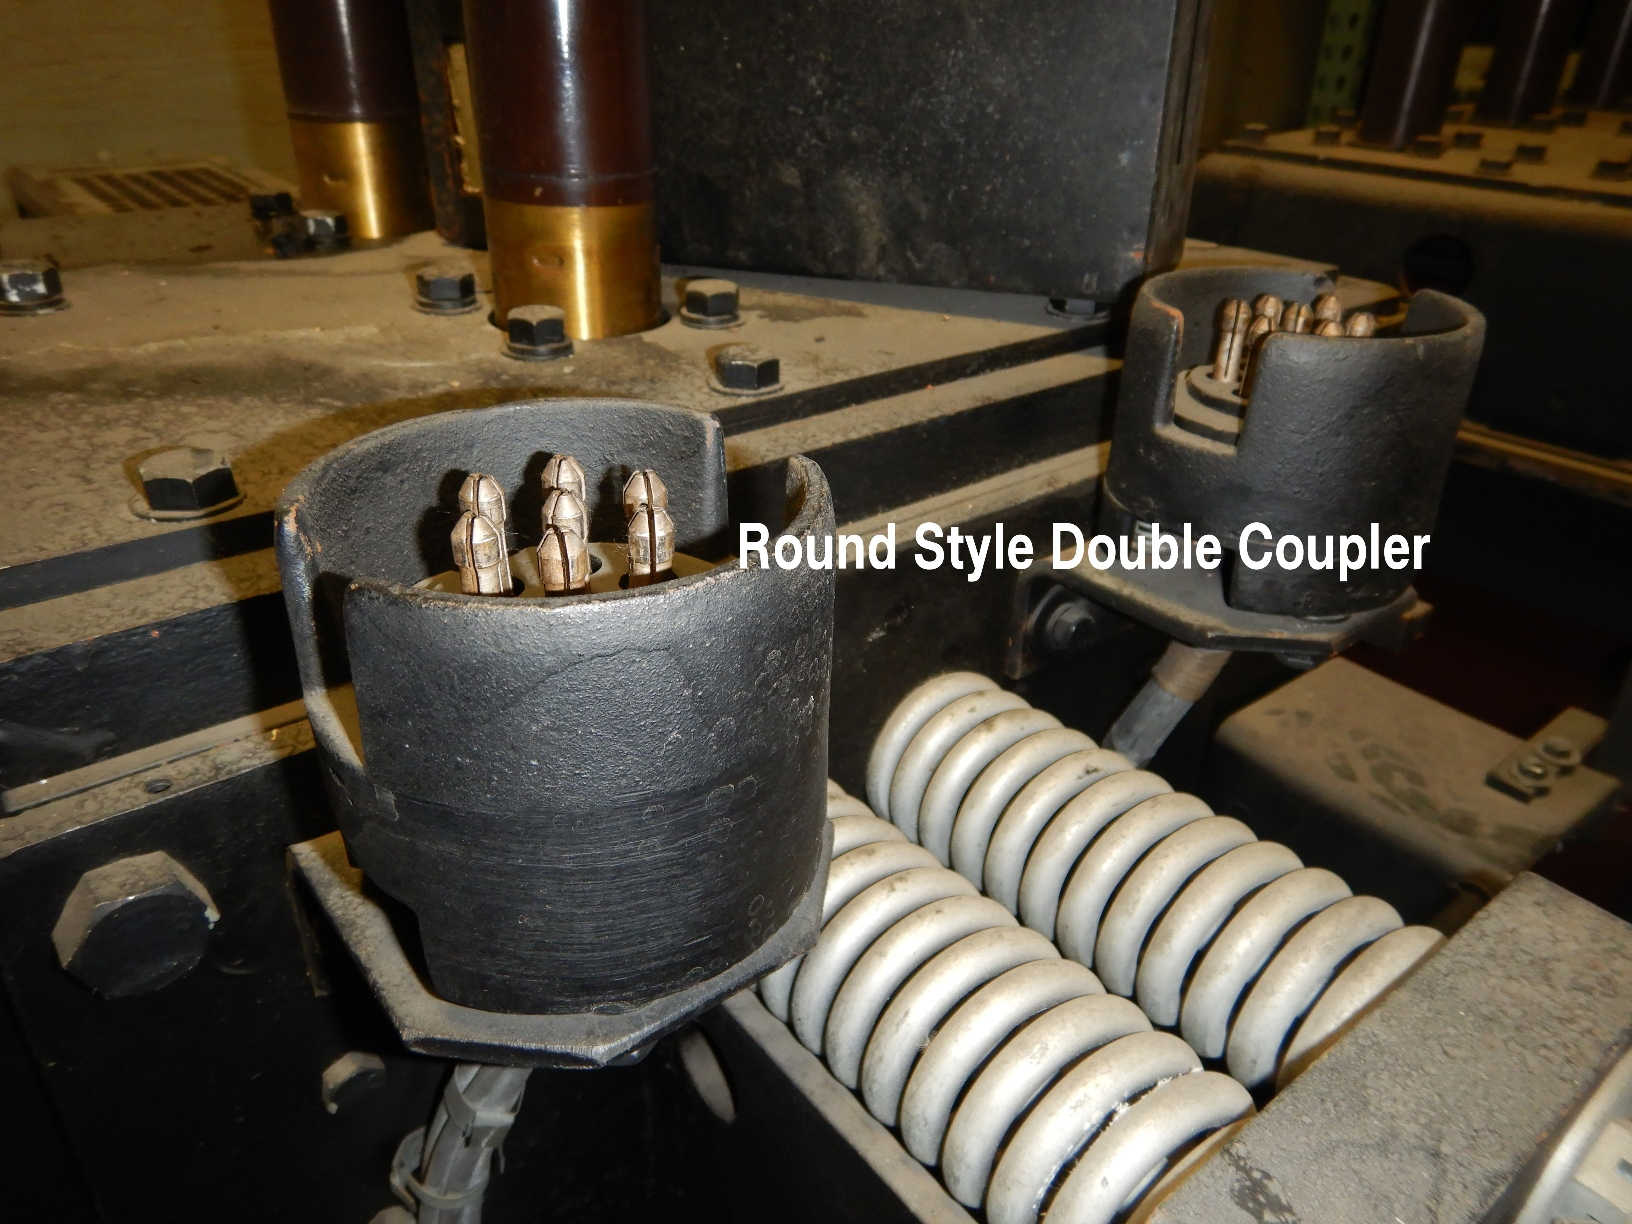 Round style double couple Magne-Blast breaker.